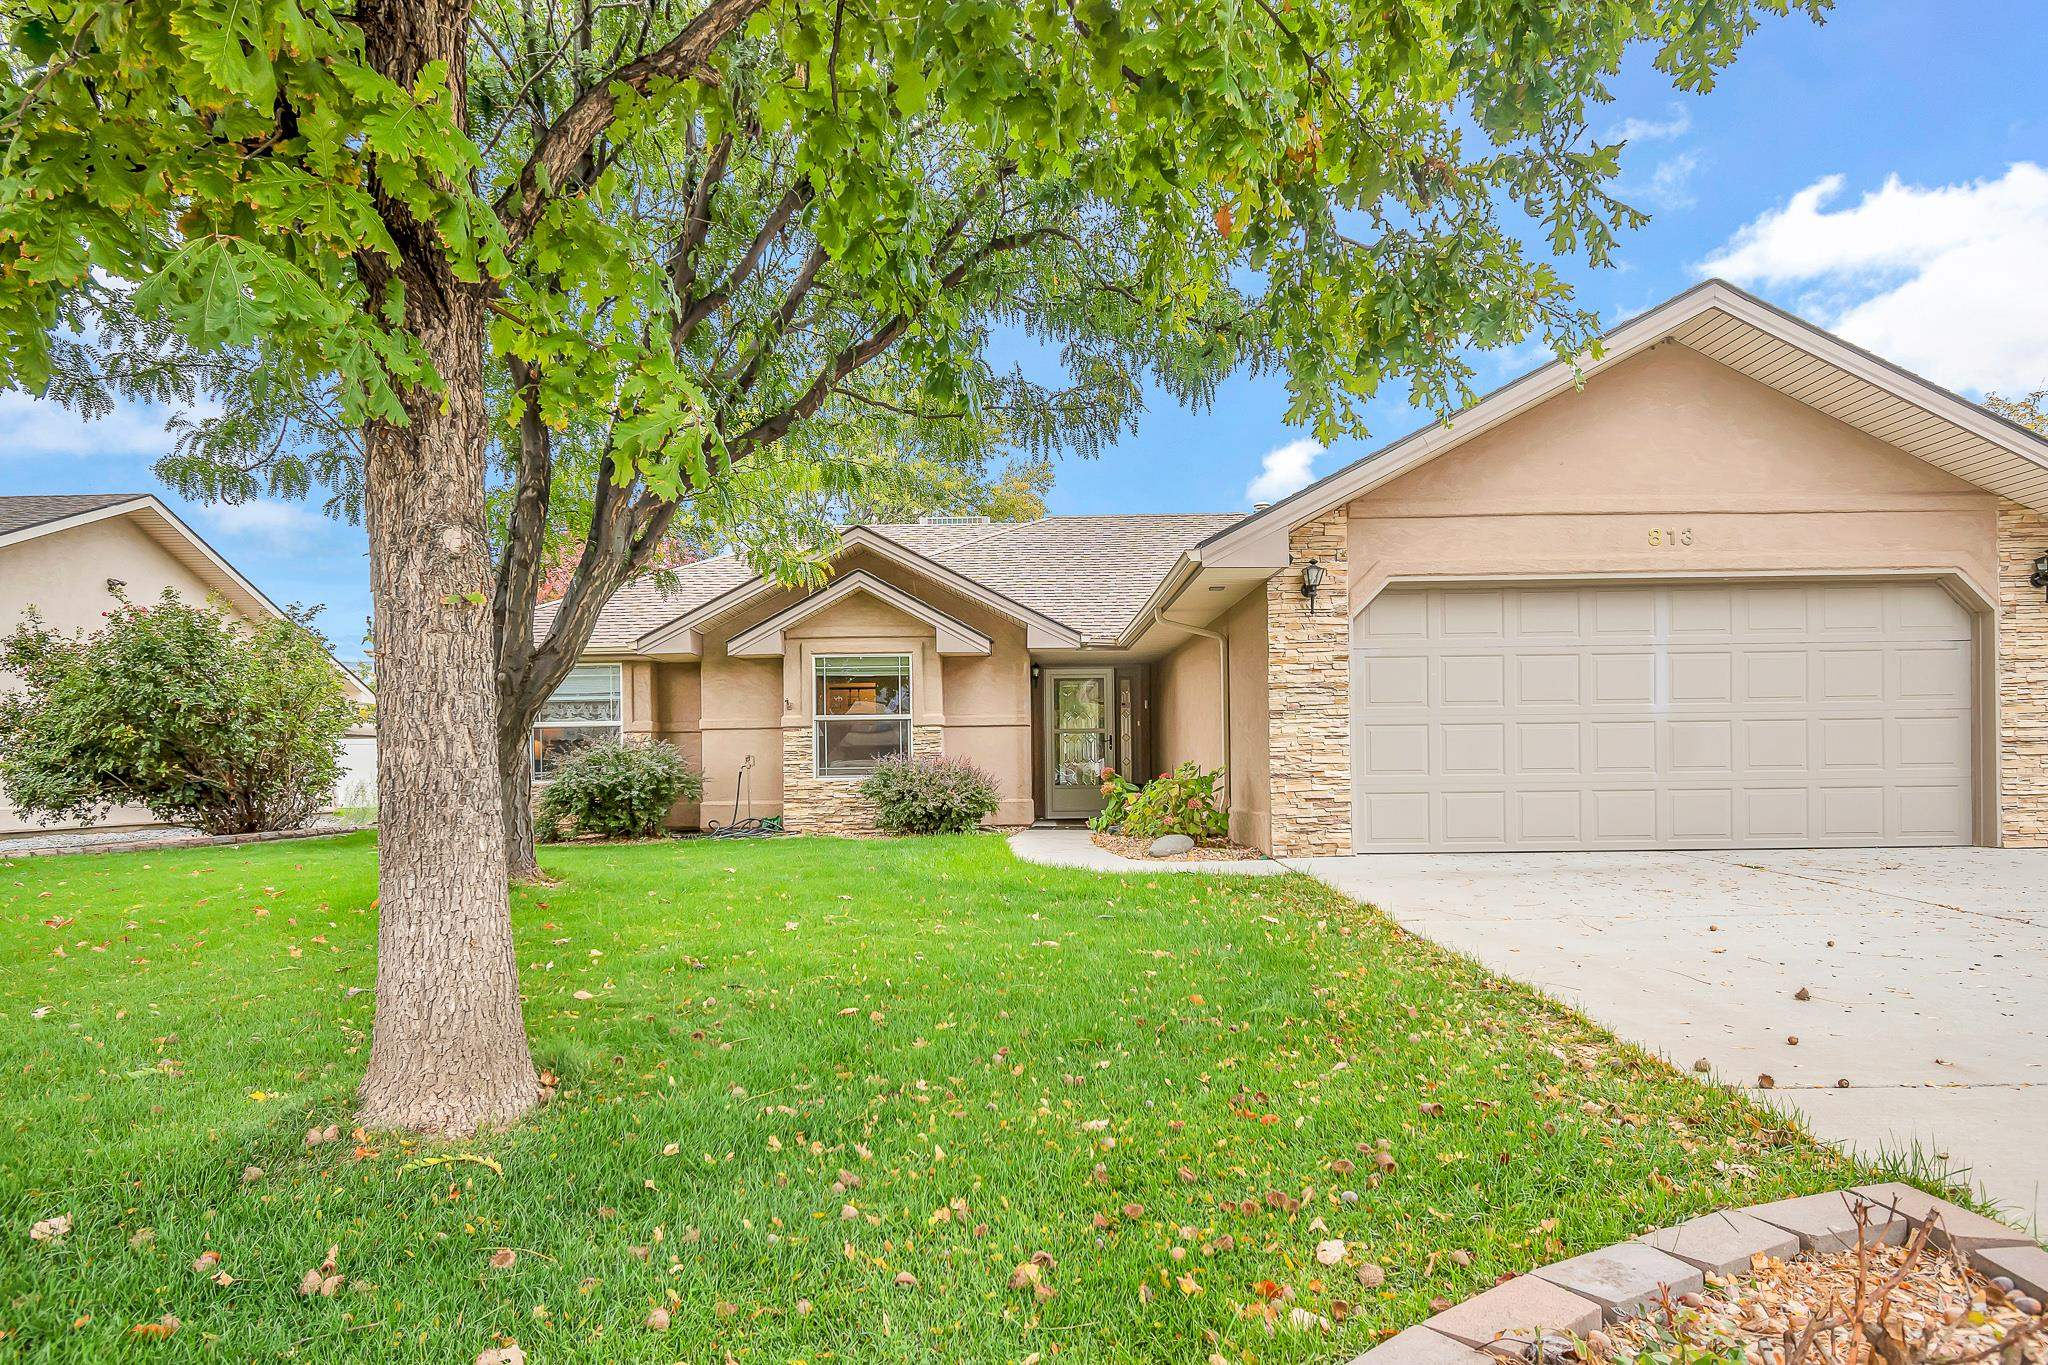 813 Lincoln Court, Palisade, CO 81526